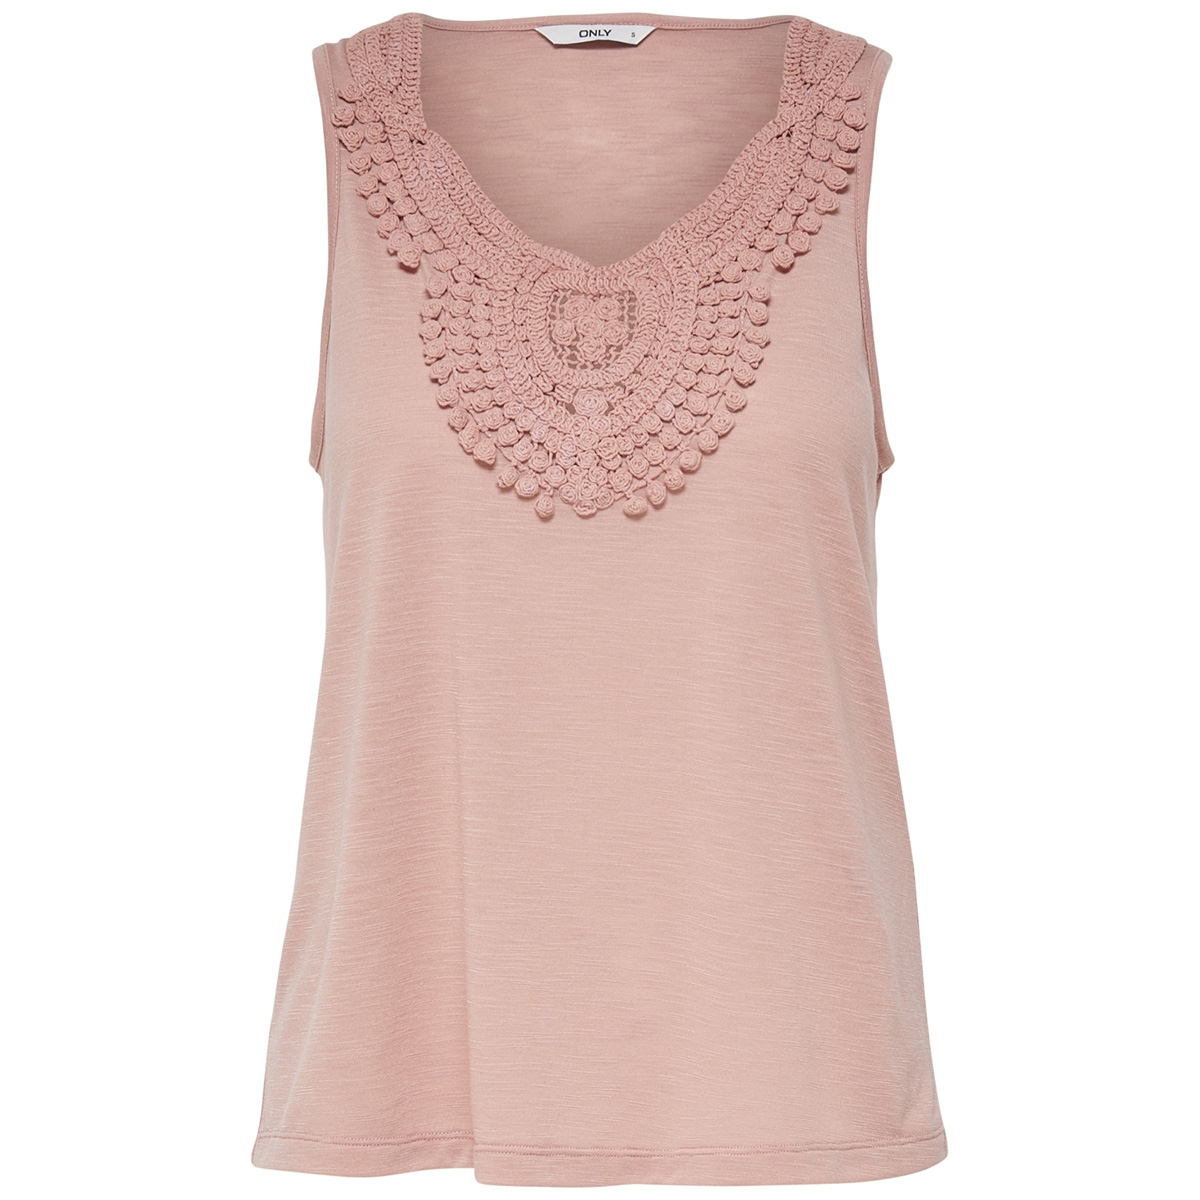 onlisa s/l crochet tank top jrs 15157559 only top misty rose